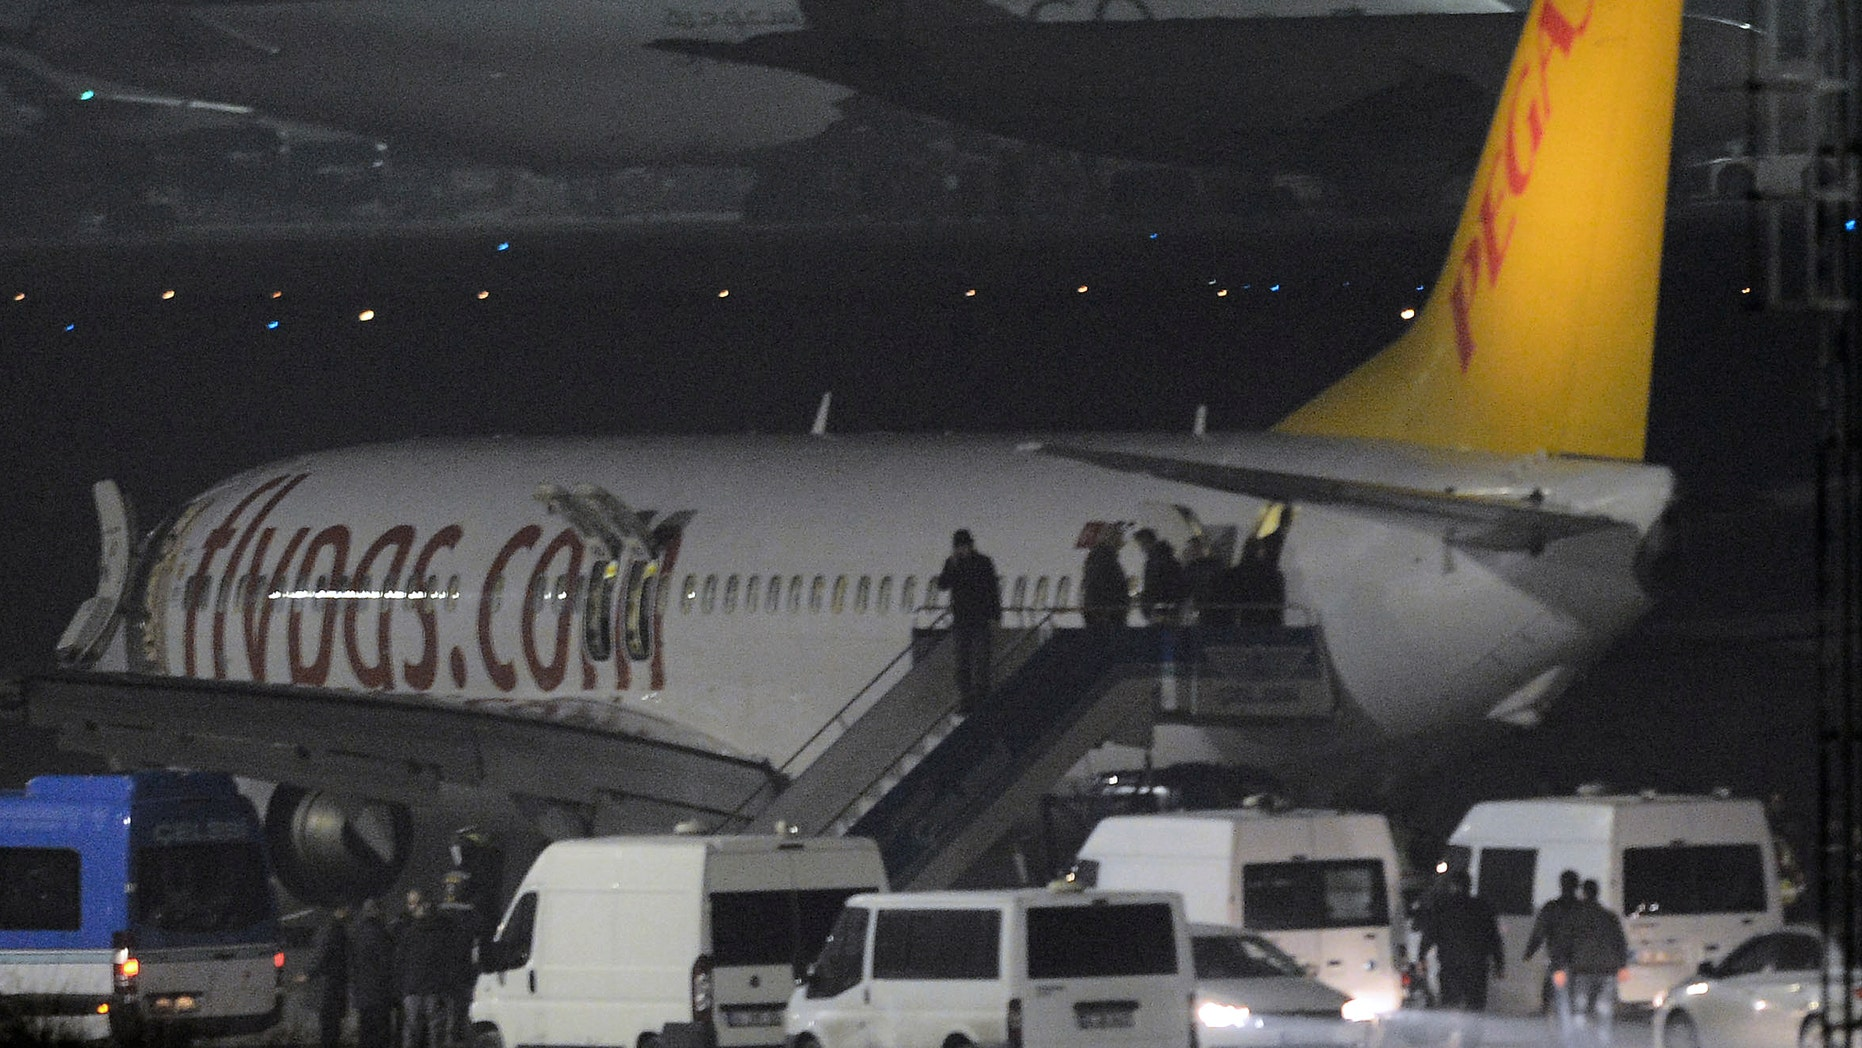 """Passengers of private Turkish company Pegasus leave the plane at the Sabiha Gokcen Airport in Istanbul, Turkey, Friday, Feb. 7, 2014. An official says authorities have subdued a man who attempted to hijack a Turkish plane to Sochi, Russia, and that the other passengers have been evacuated. Huseyin Avni Mutlu, the Istanbul governor, says on Twitter that """"the operation has ended."""" In another tweet Friday, he said all passengers were evacuated """"without any problems.""""(AP Photo/Emrah Gurel)"""